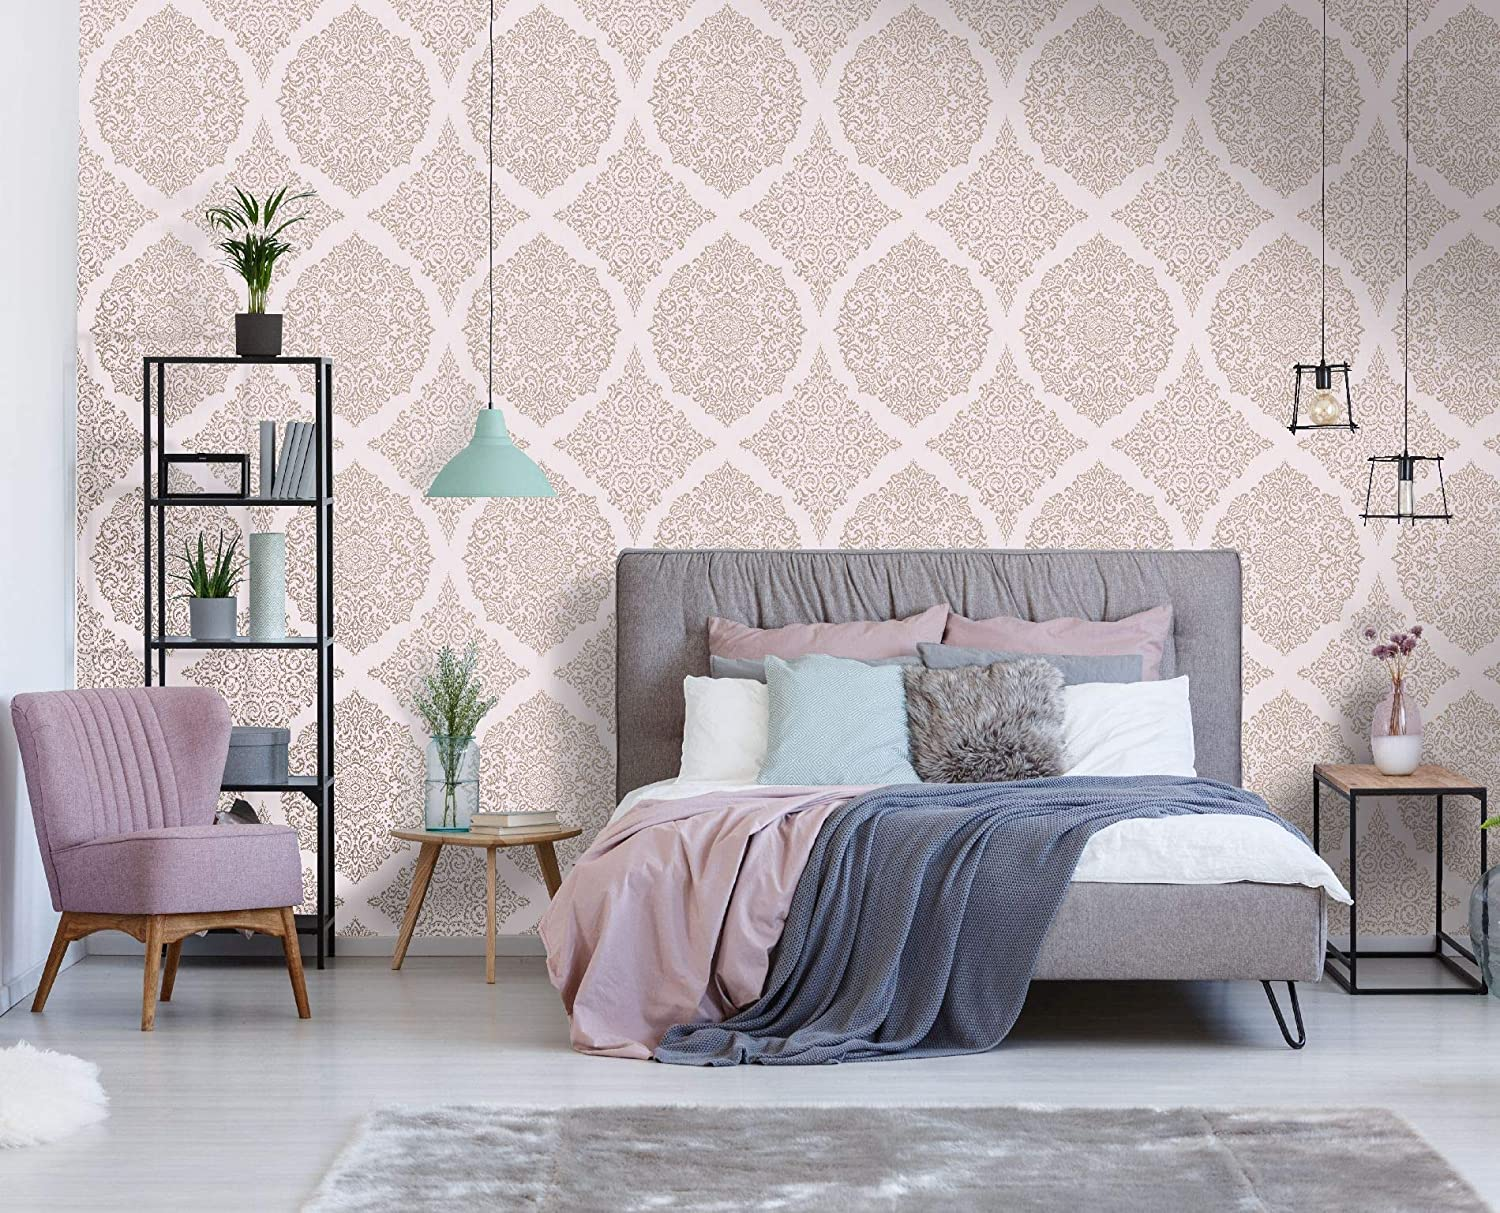 Superfresco Easy Florence Pink Rose Gold Damask Wallpaper Amazon Com